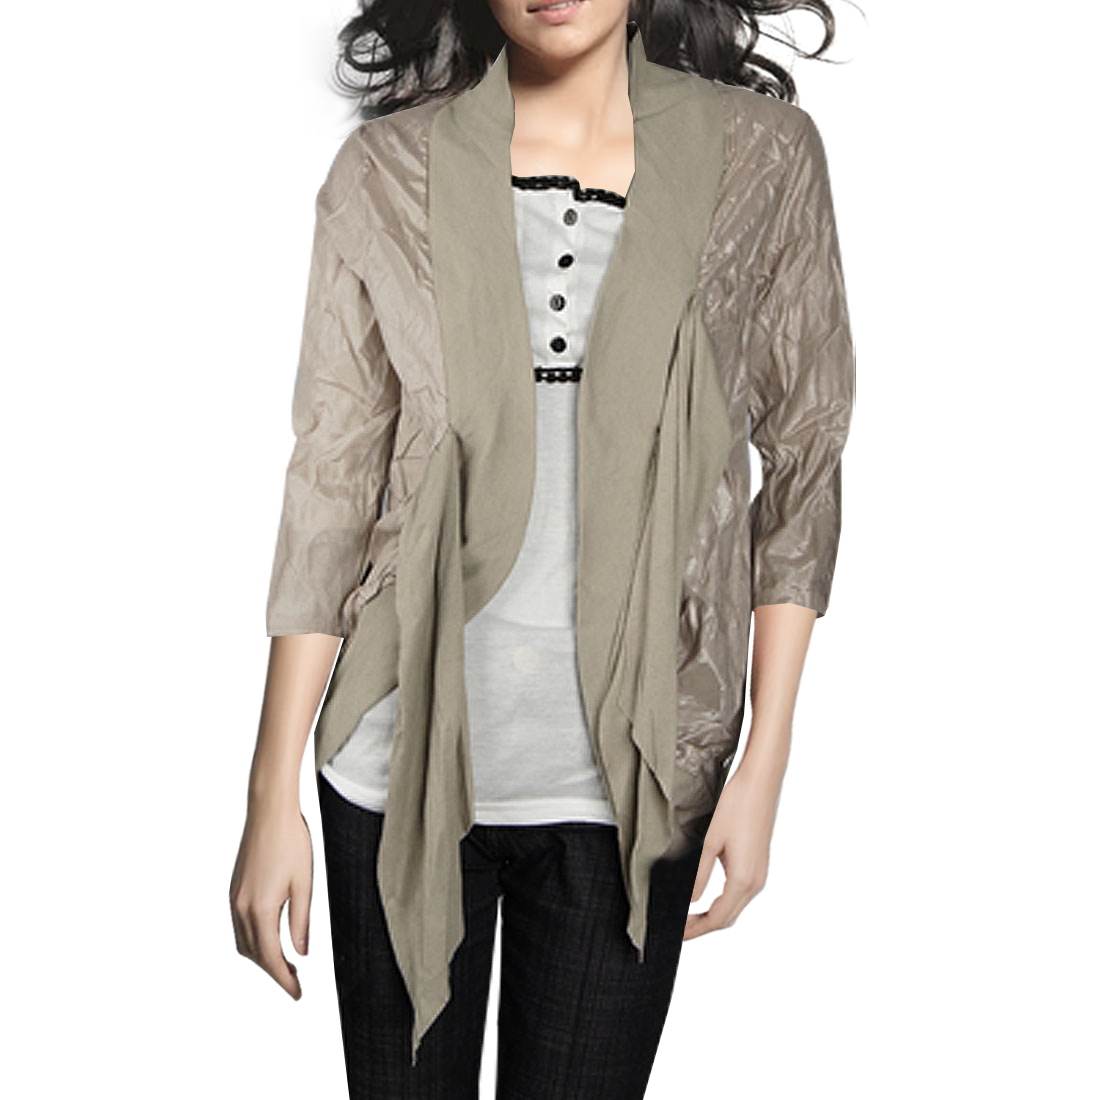 Khaki Front Opening 3/4 Sleeve Self Tie Ladies Shirt Top XS